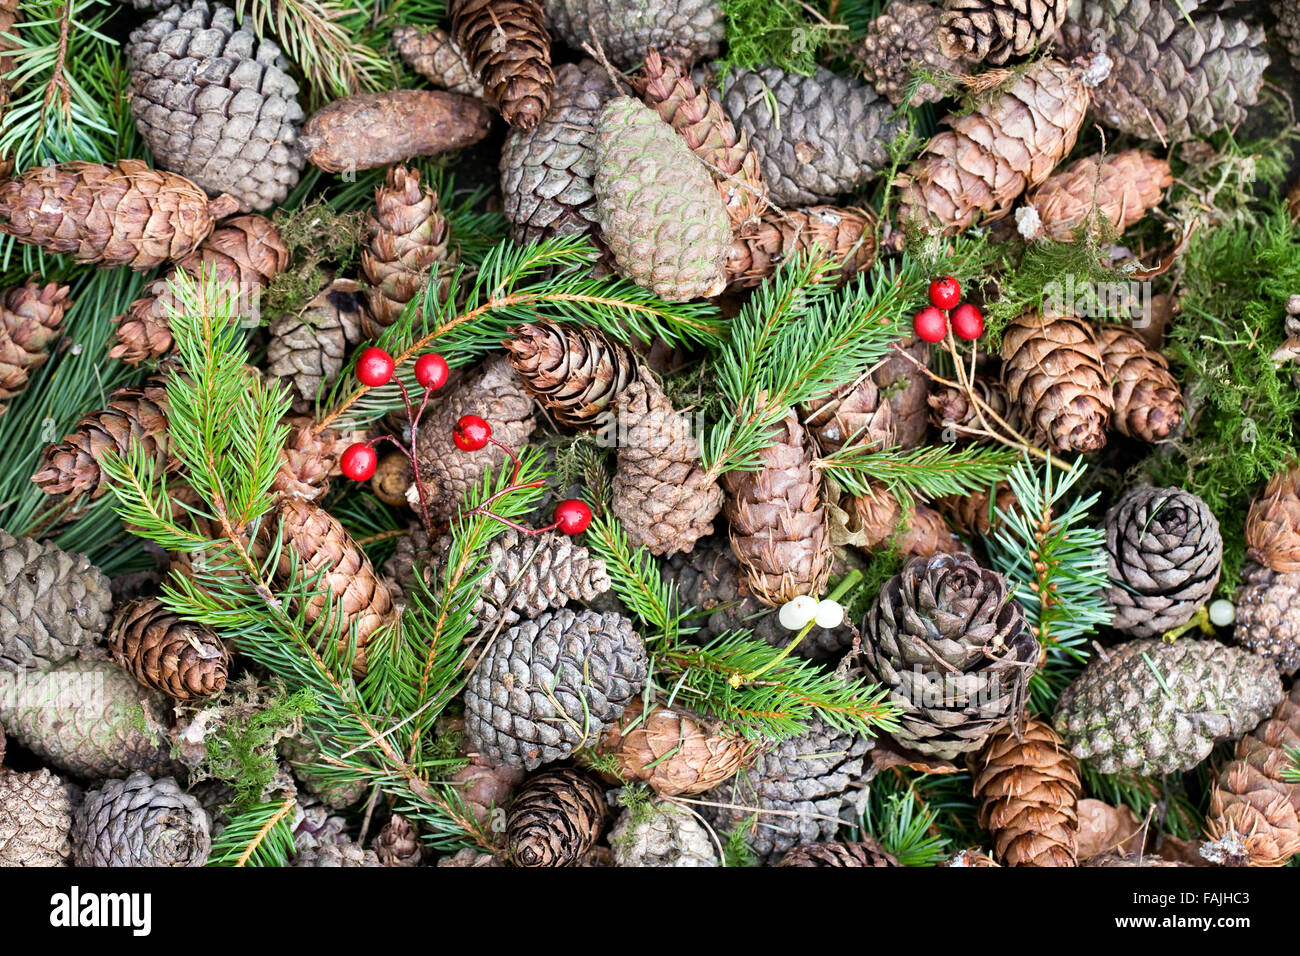 Assorted Pine cones, berries and needles. - Stock Image